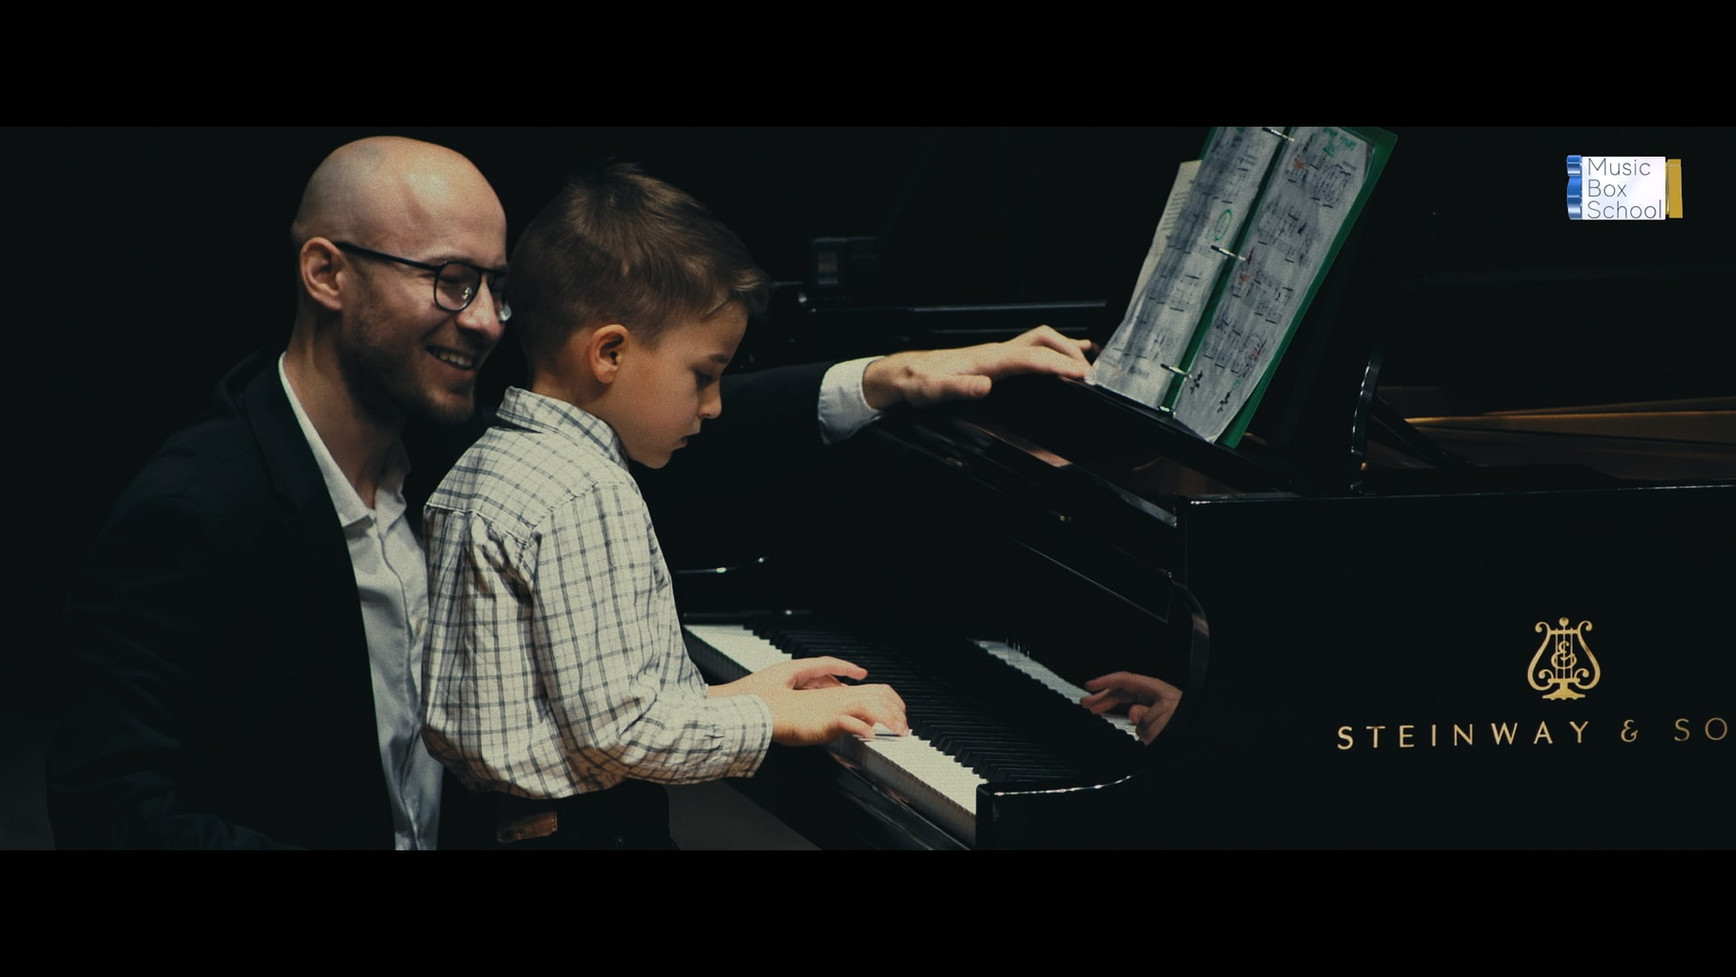 Piano tutors in Sheepshead Bay